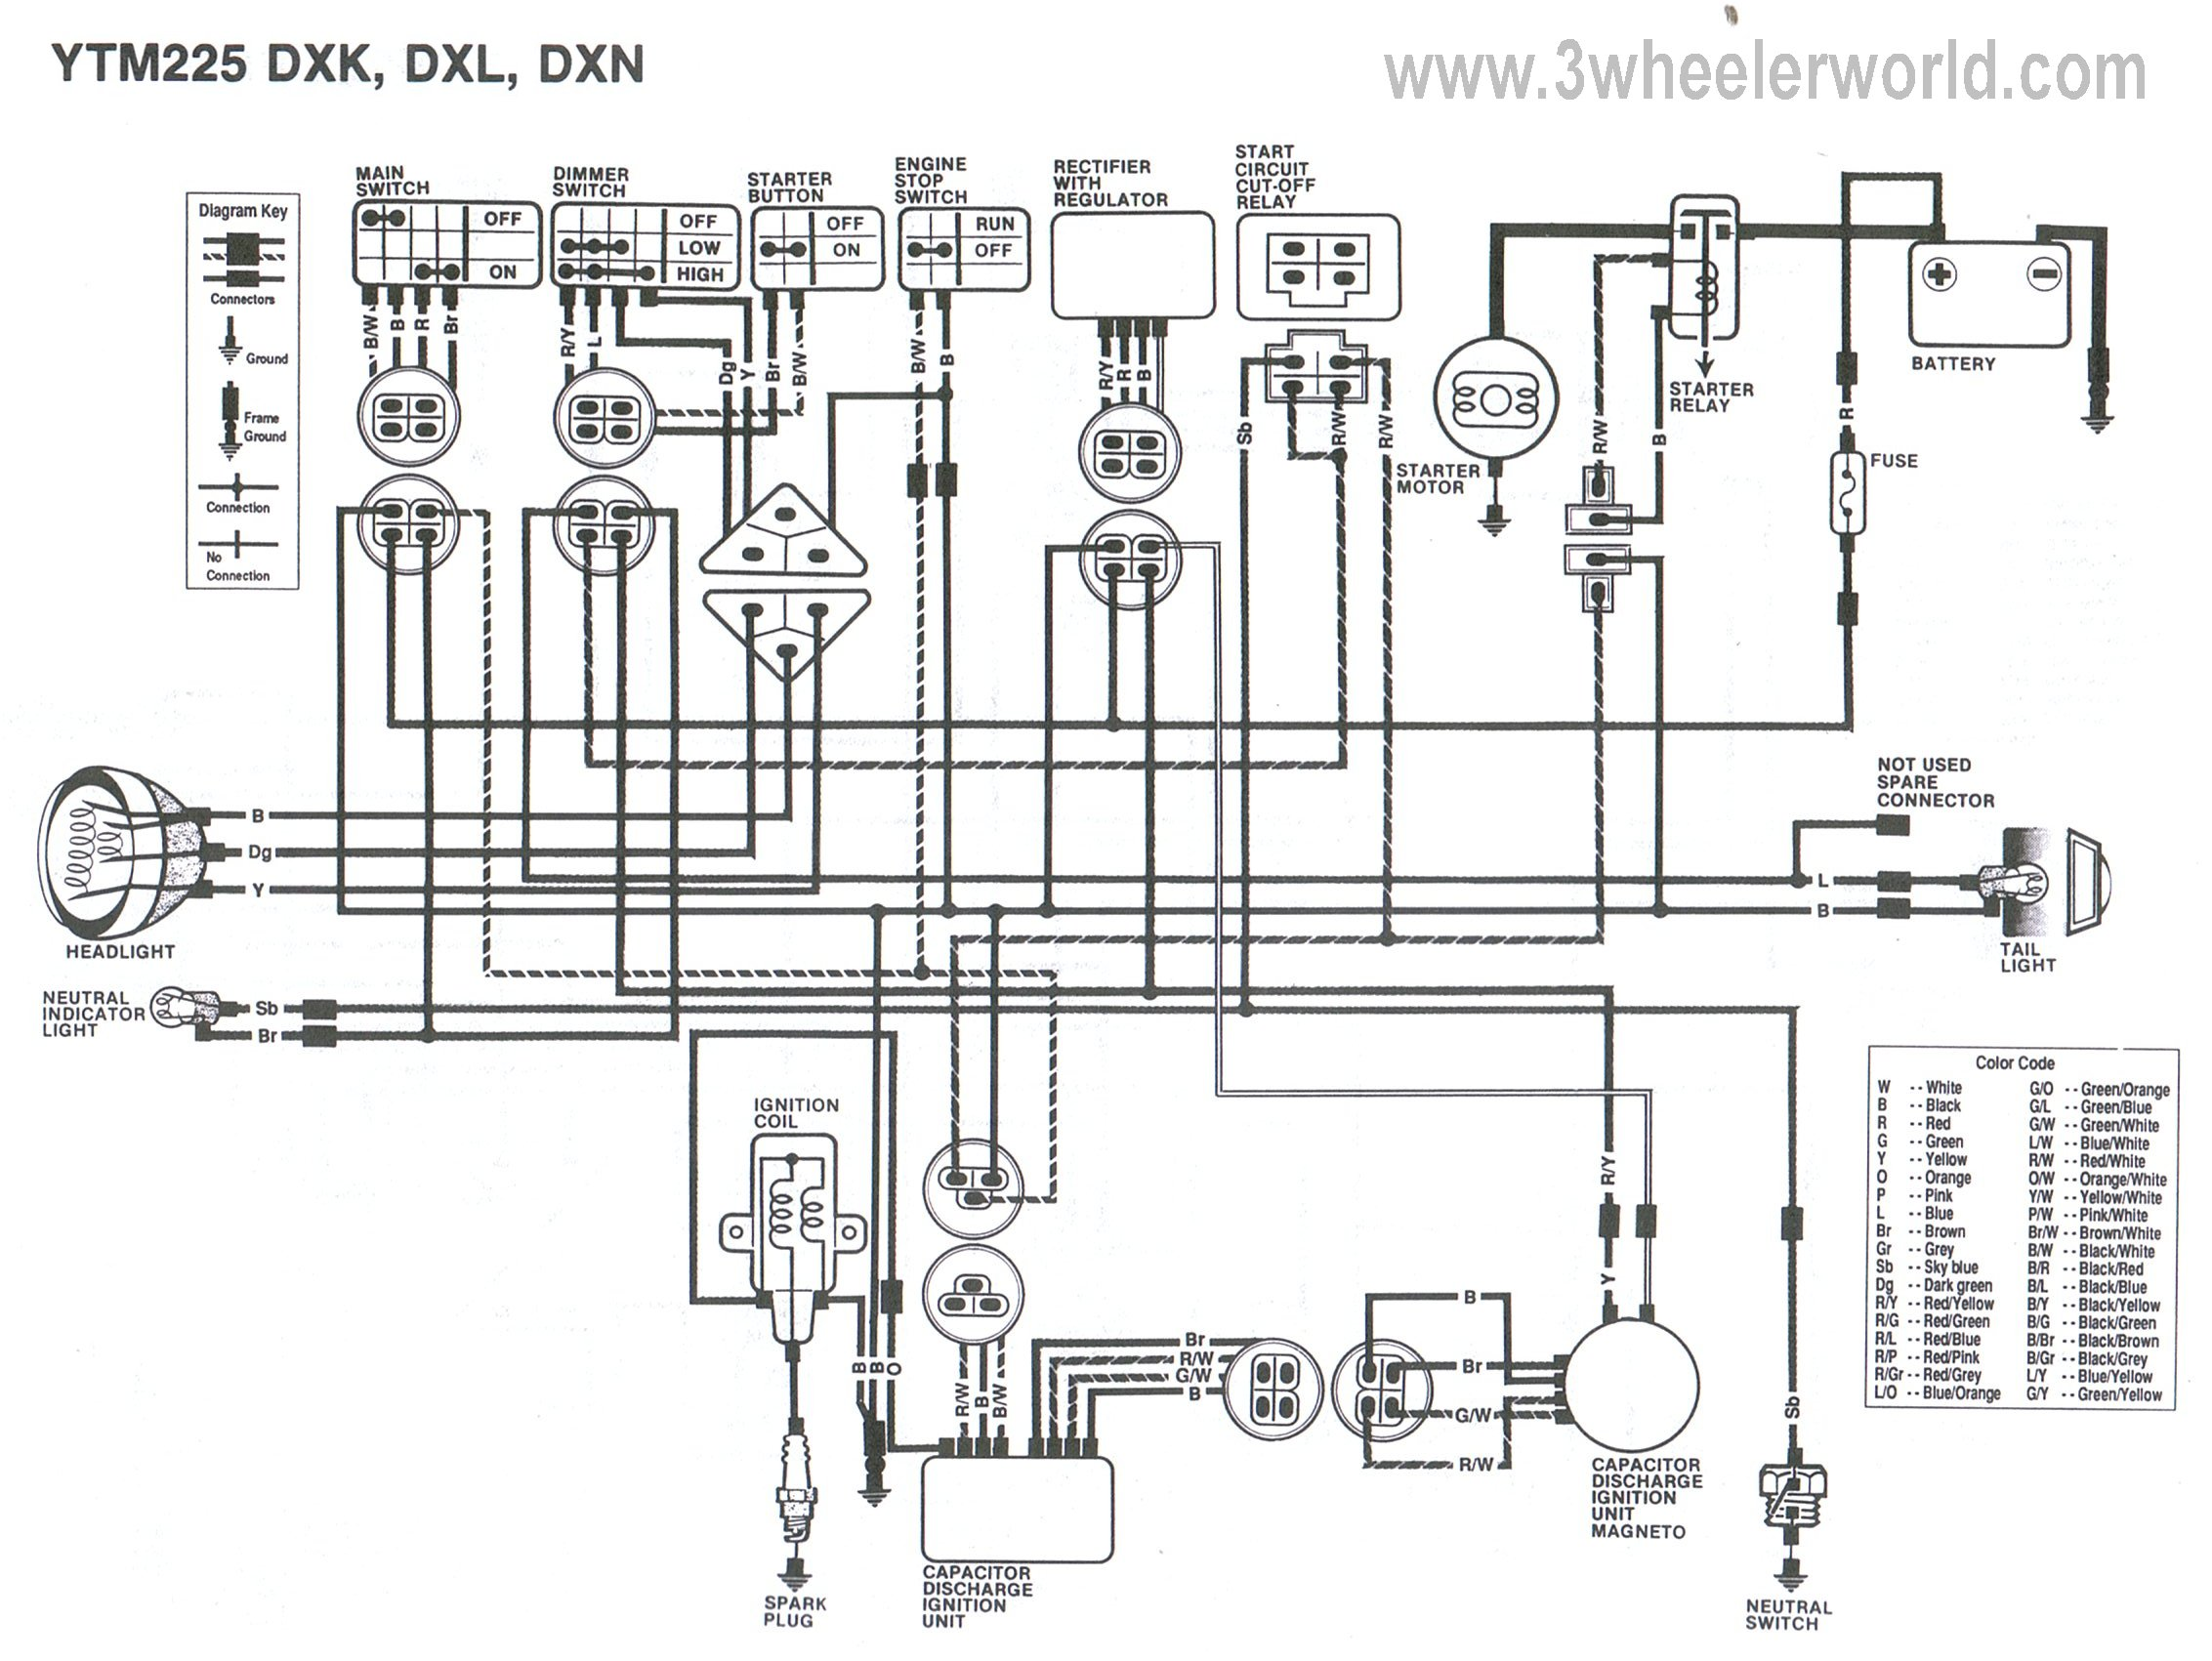 YTM225DXKDXLDXN 3 wheeler world tech help yamaha wiring diagrams yamaha moto 4 wiring schematic at soozxer.org